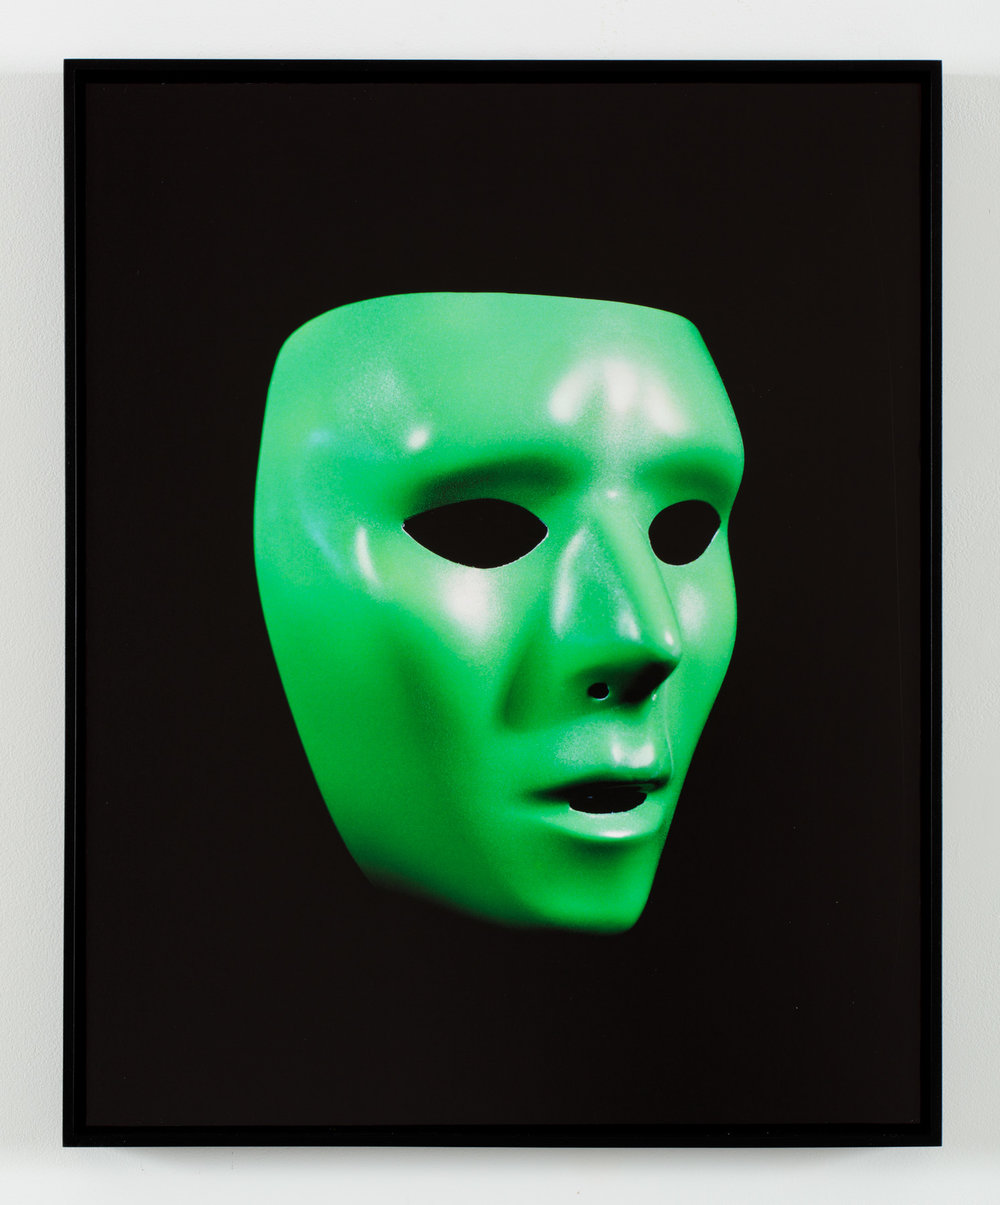 Mask   Archival Inkjet Print  19.2 x 24 inches  edition of 5 + AP  2016